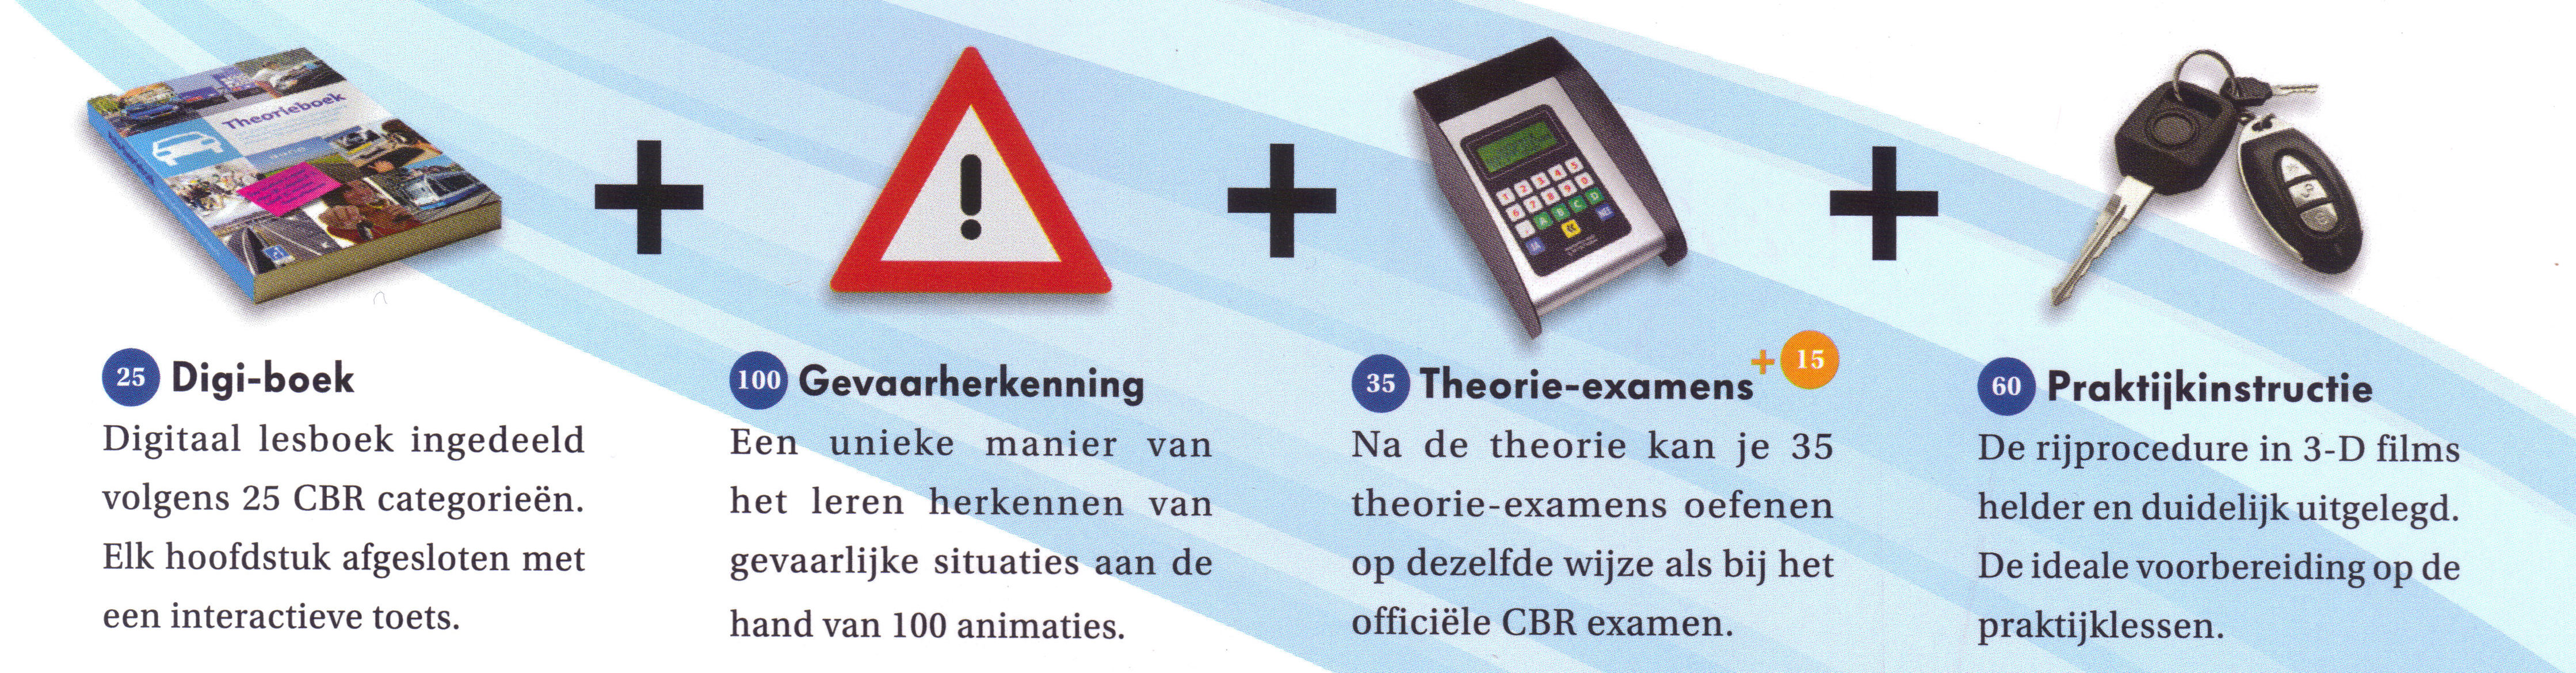 itheorie-smal-website